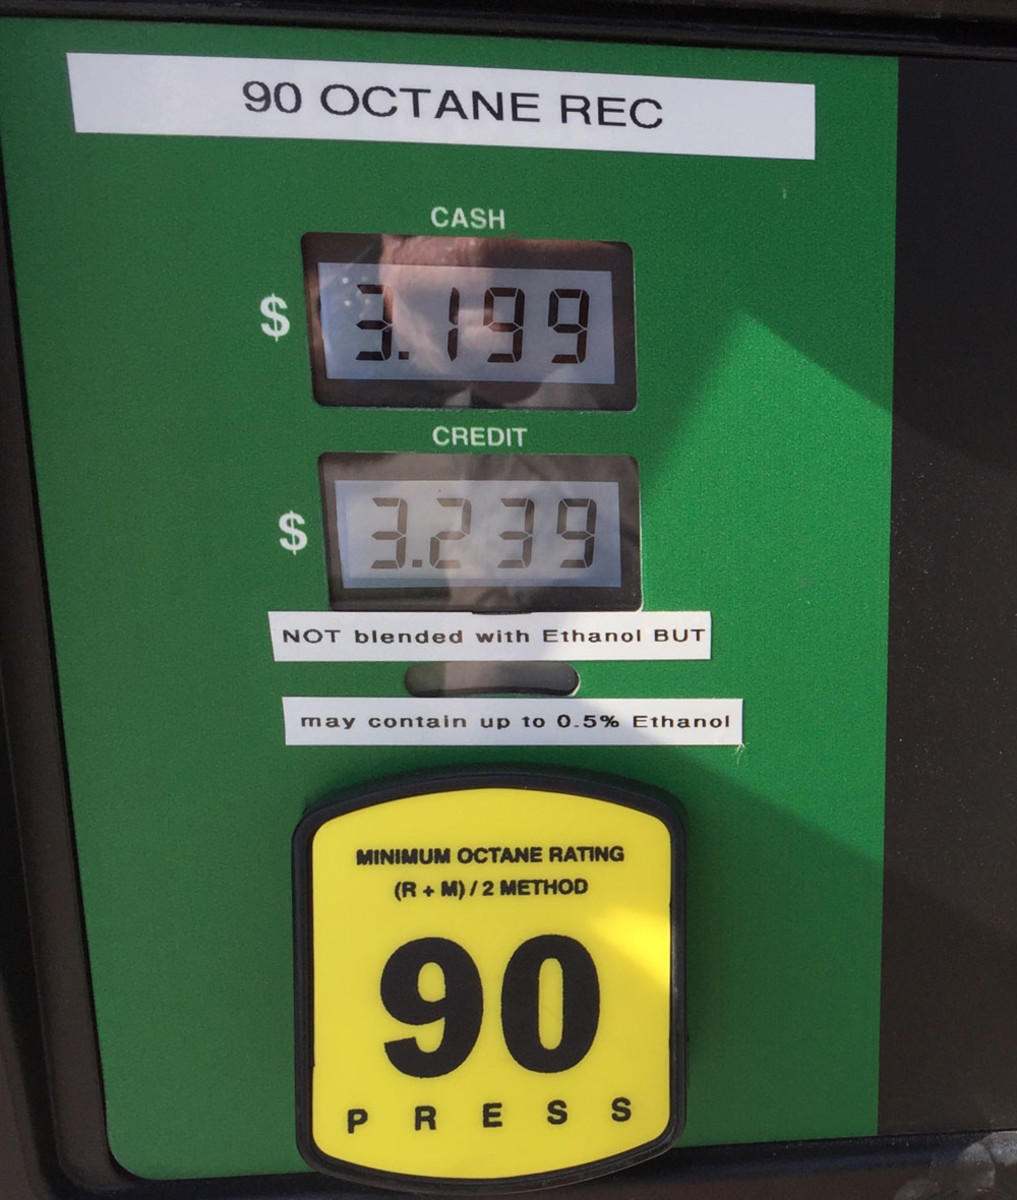 A label between the price and octane level at this pump tells consumers the fuel is not blended with ethanol.